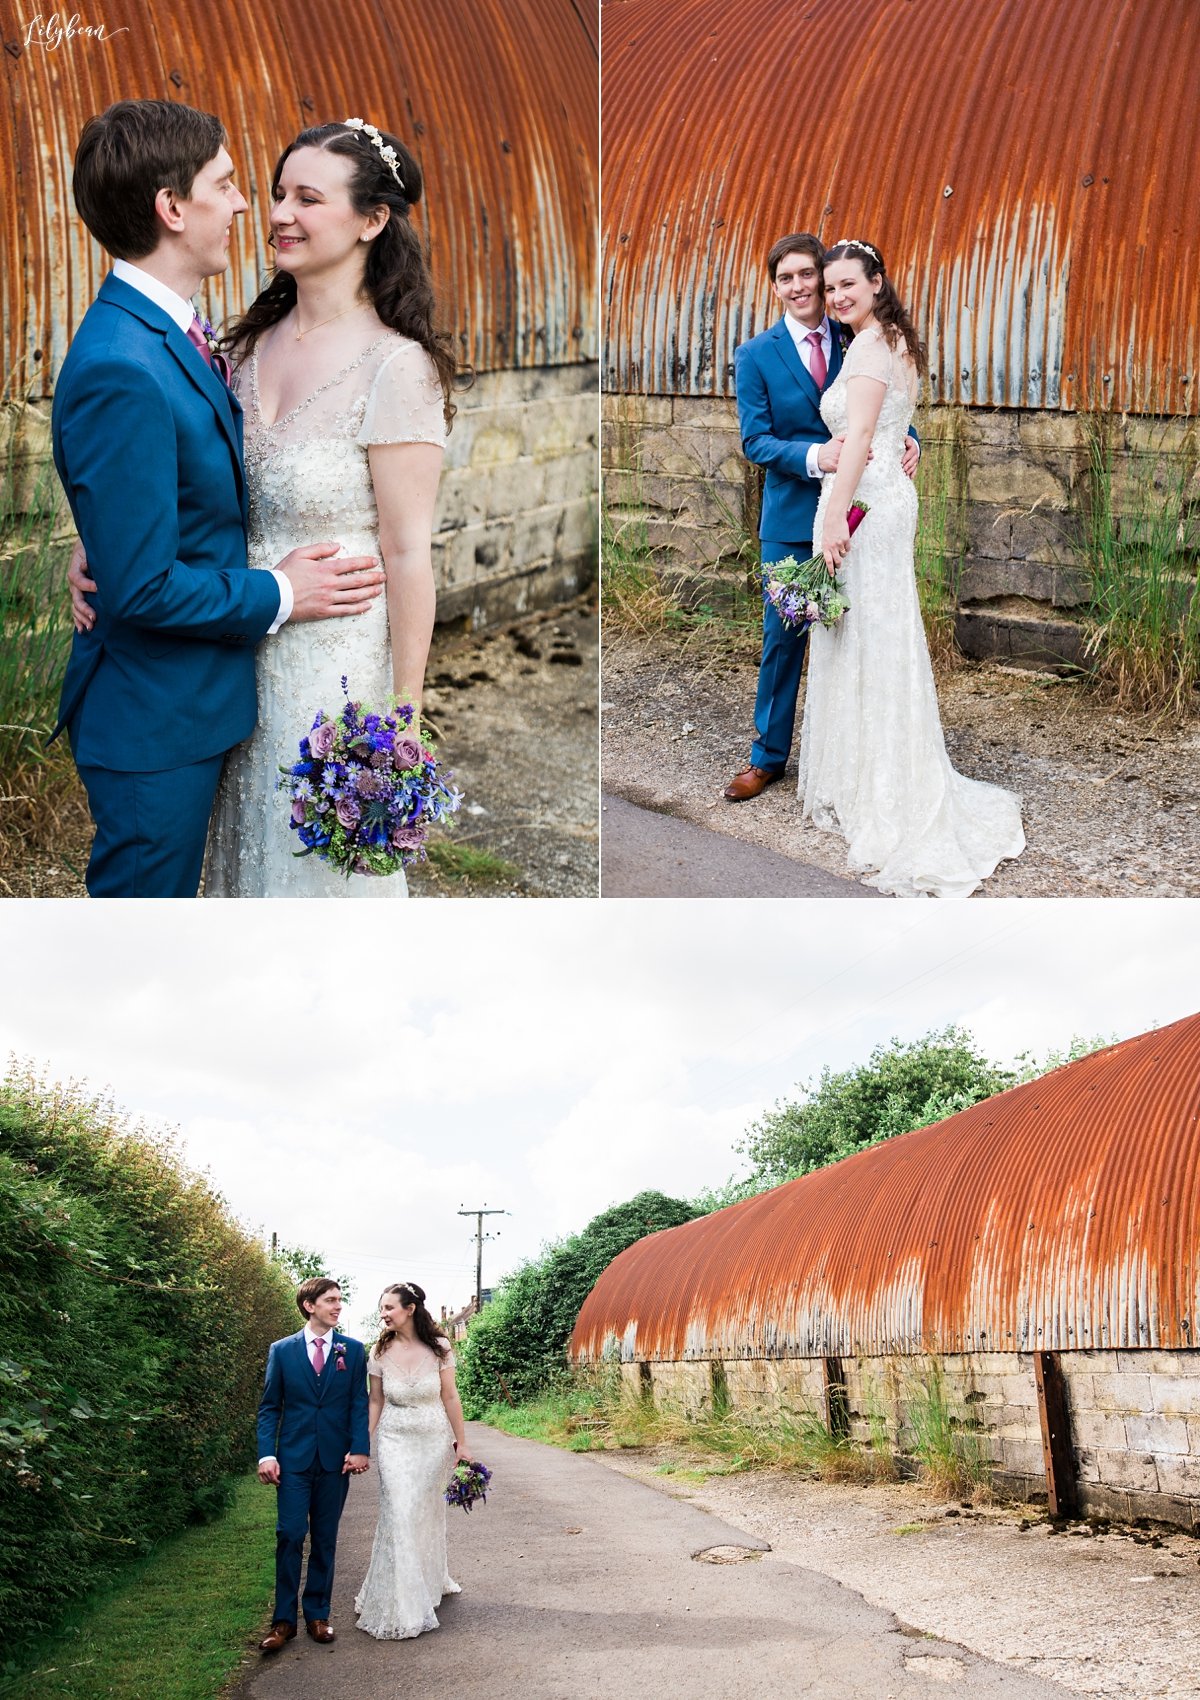 Rustic backdrop of Bride and Groom